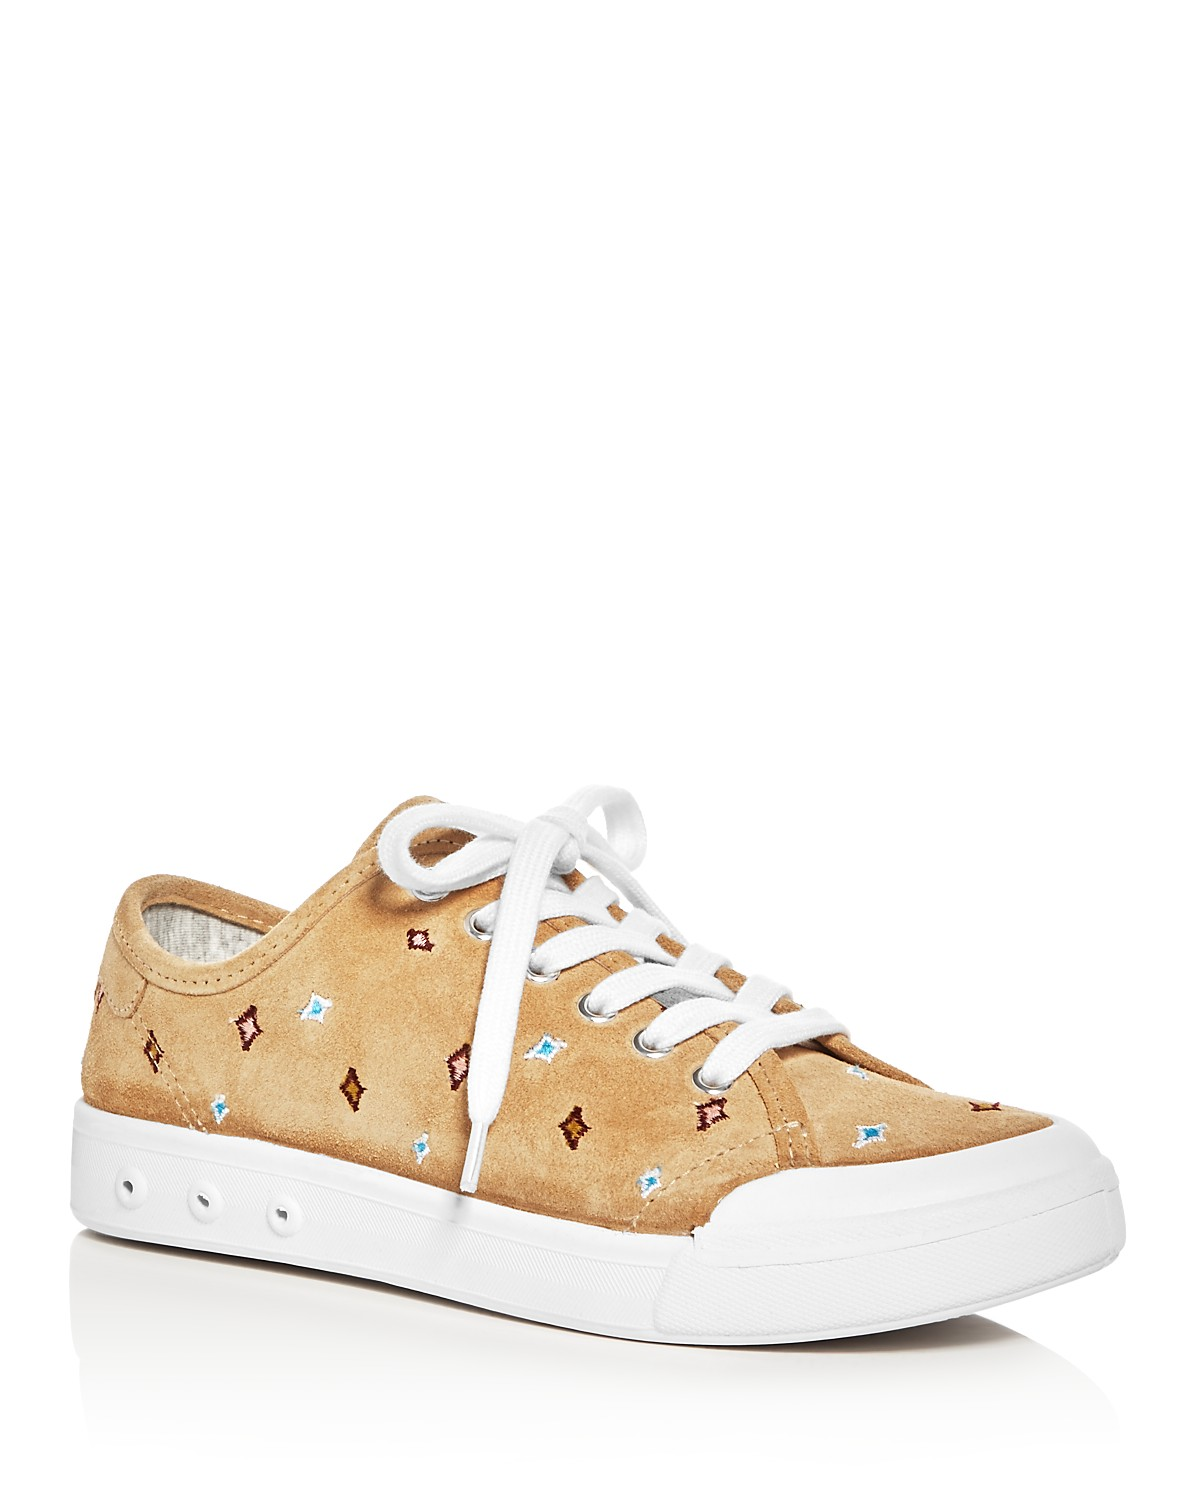 RAG&BONE Women's Standard Issue Suede Embroidered Lace Up Sneakers MWpP9